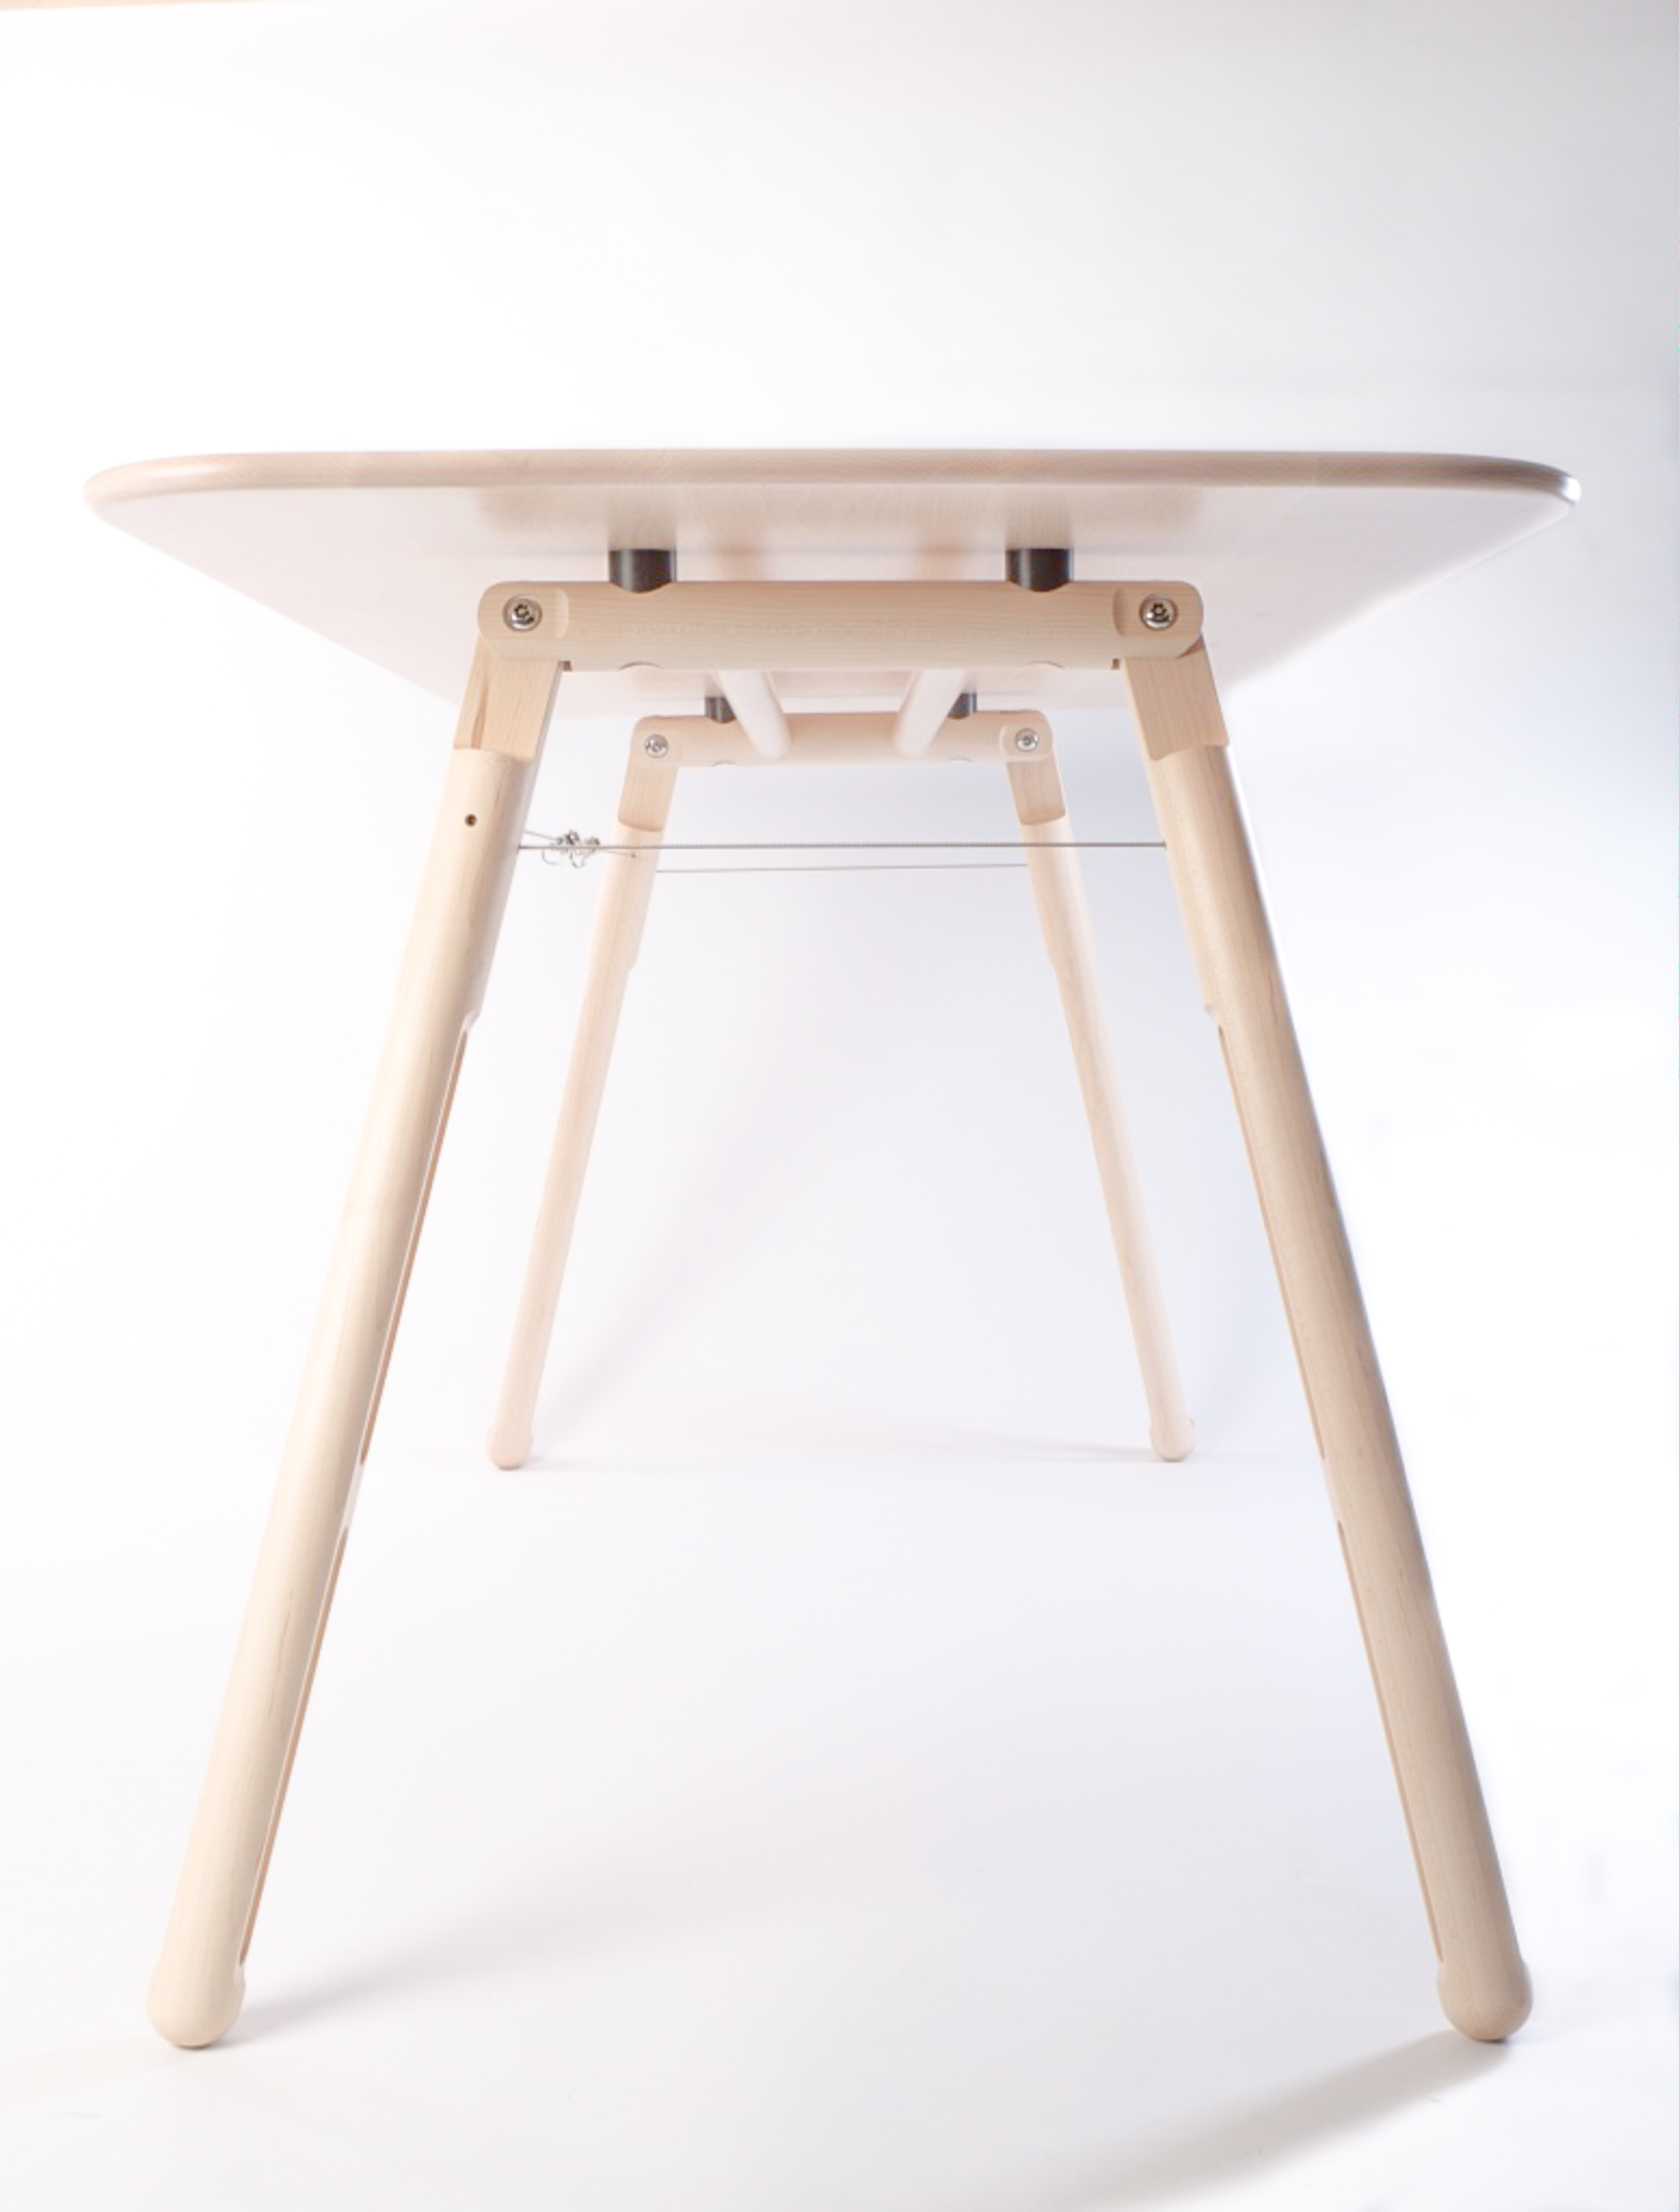 Phloem Desk